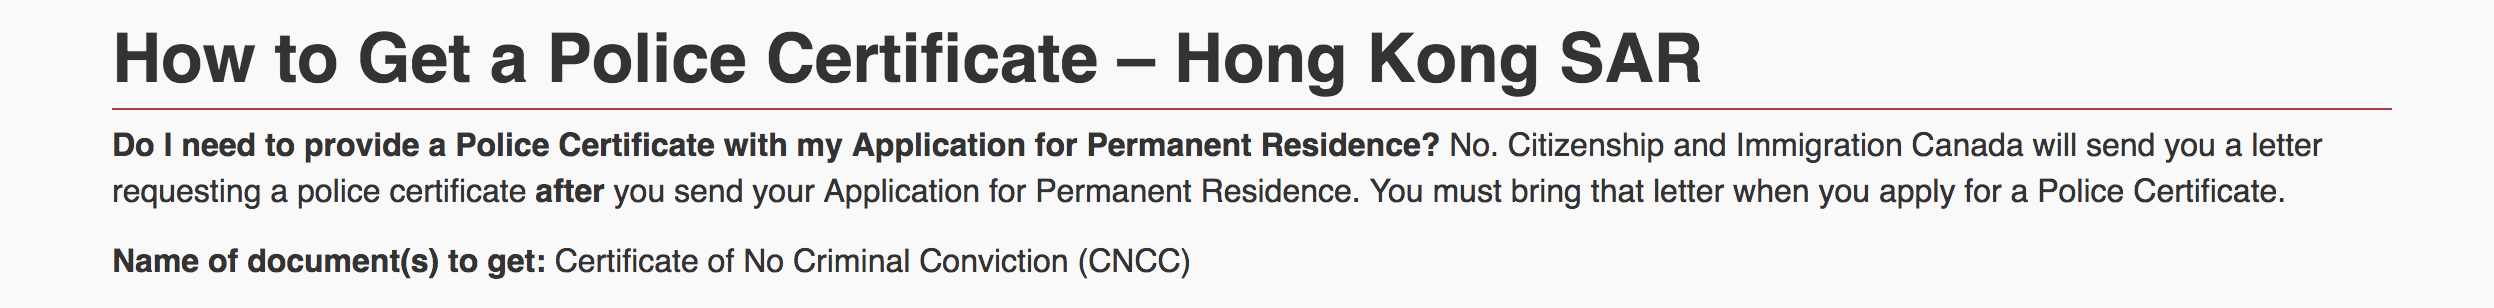 online application for hongkong police clearance